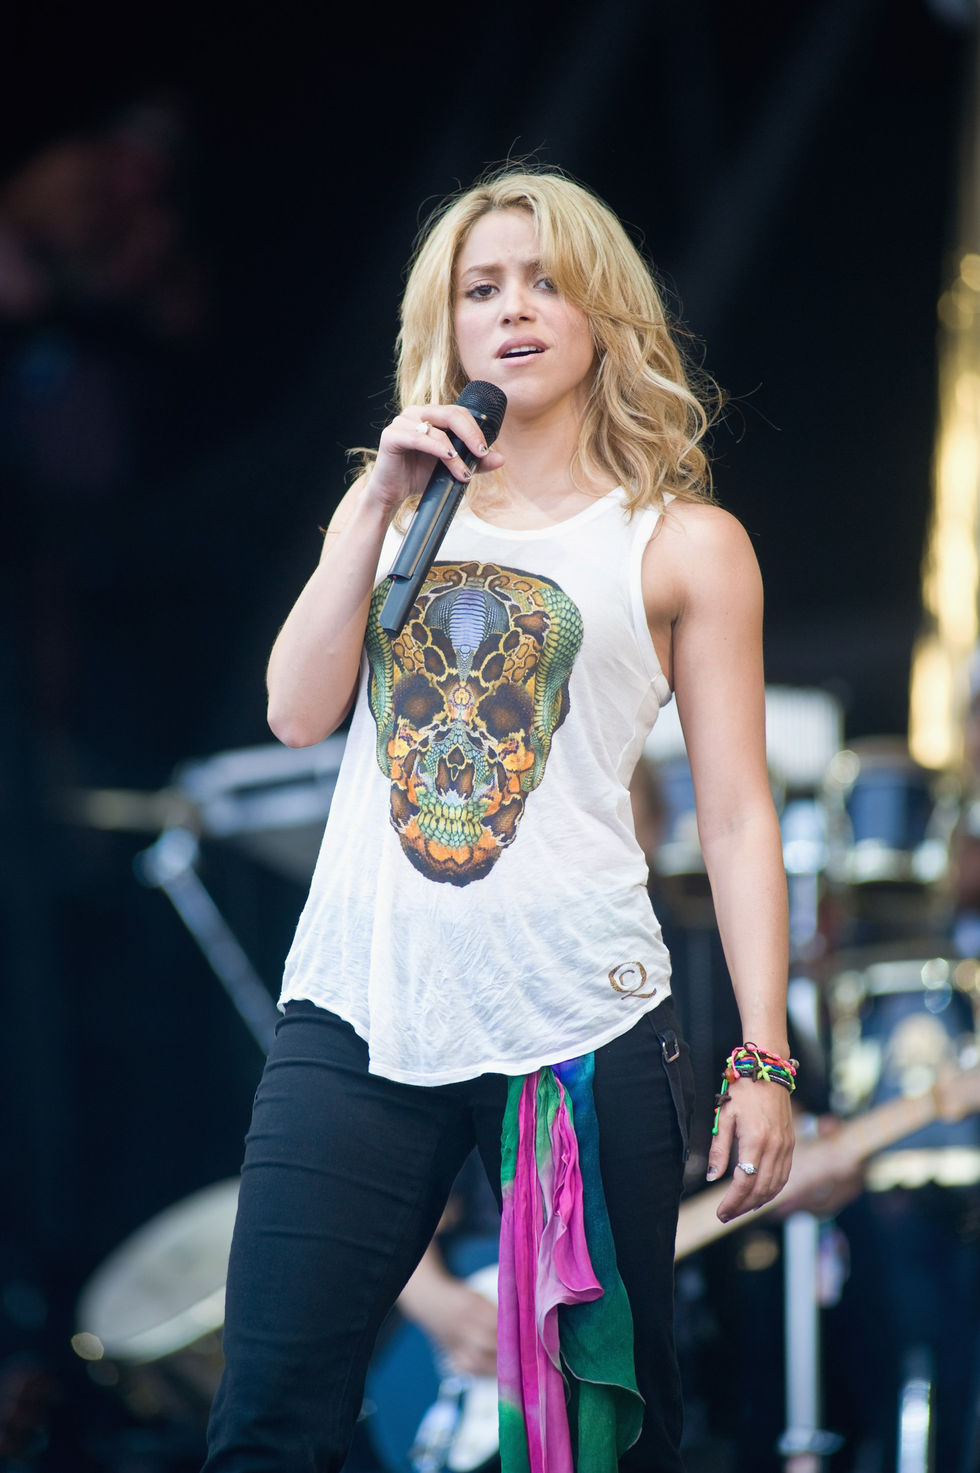 Who Will Wow At Glastonbury Festival This Year Who Will Wow At Glastonbury Festival This Year new images